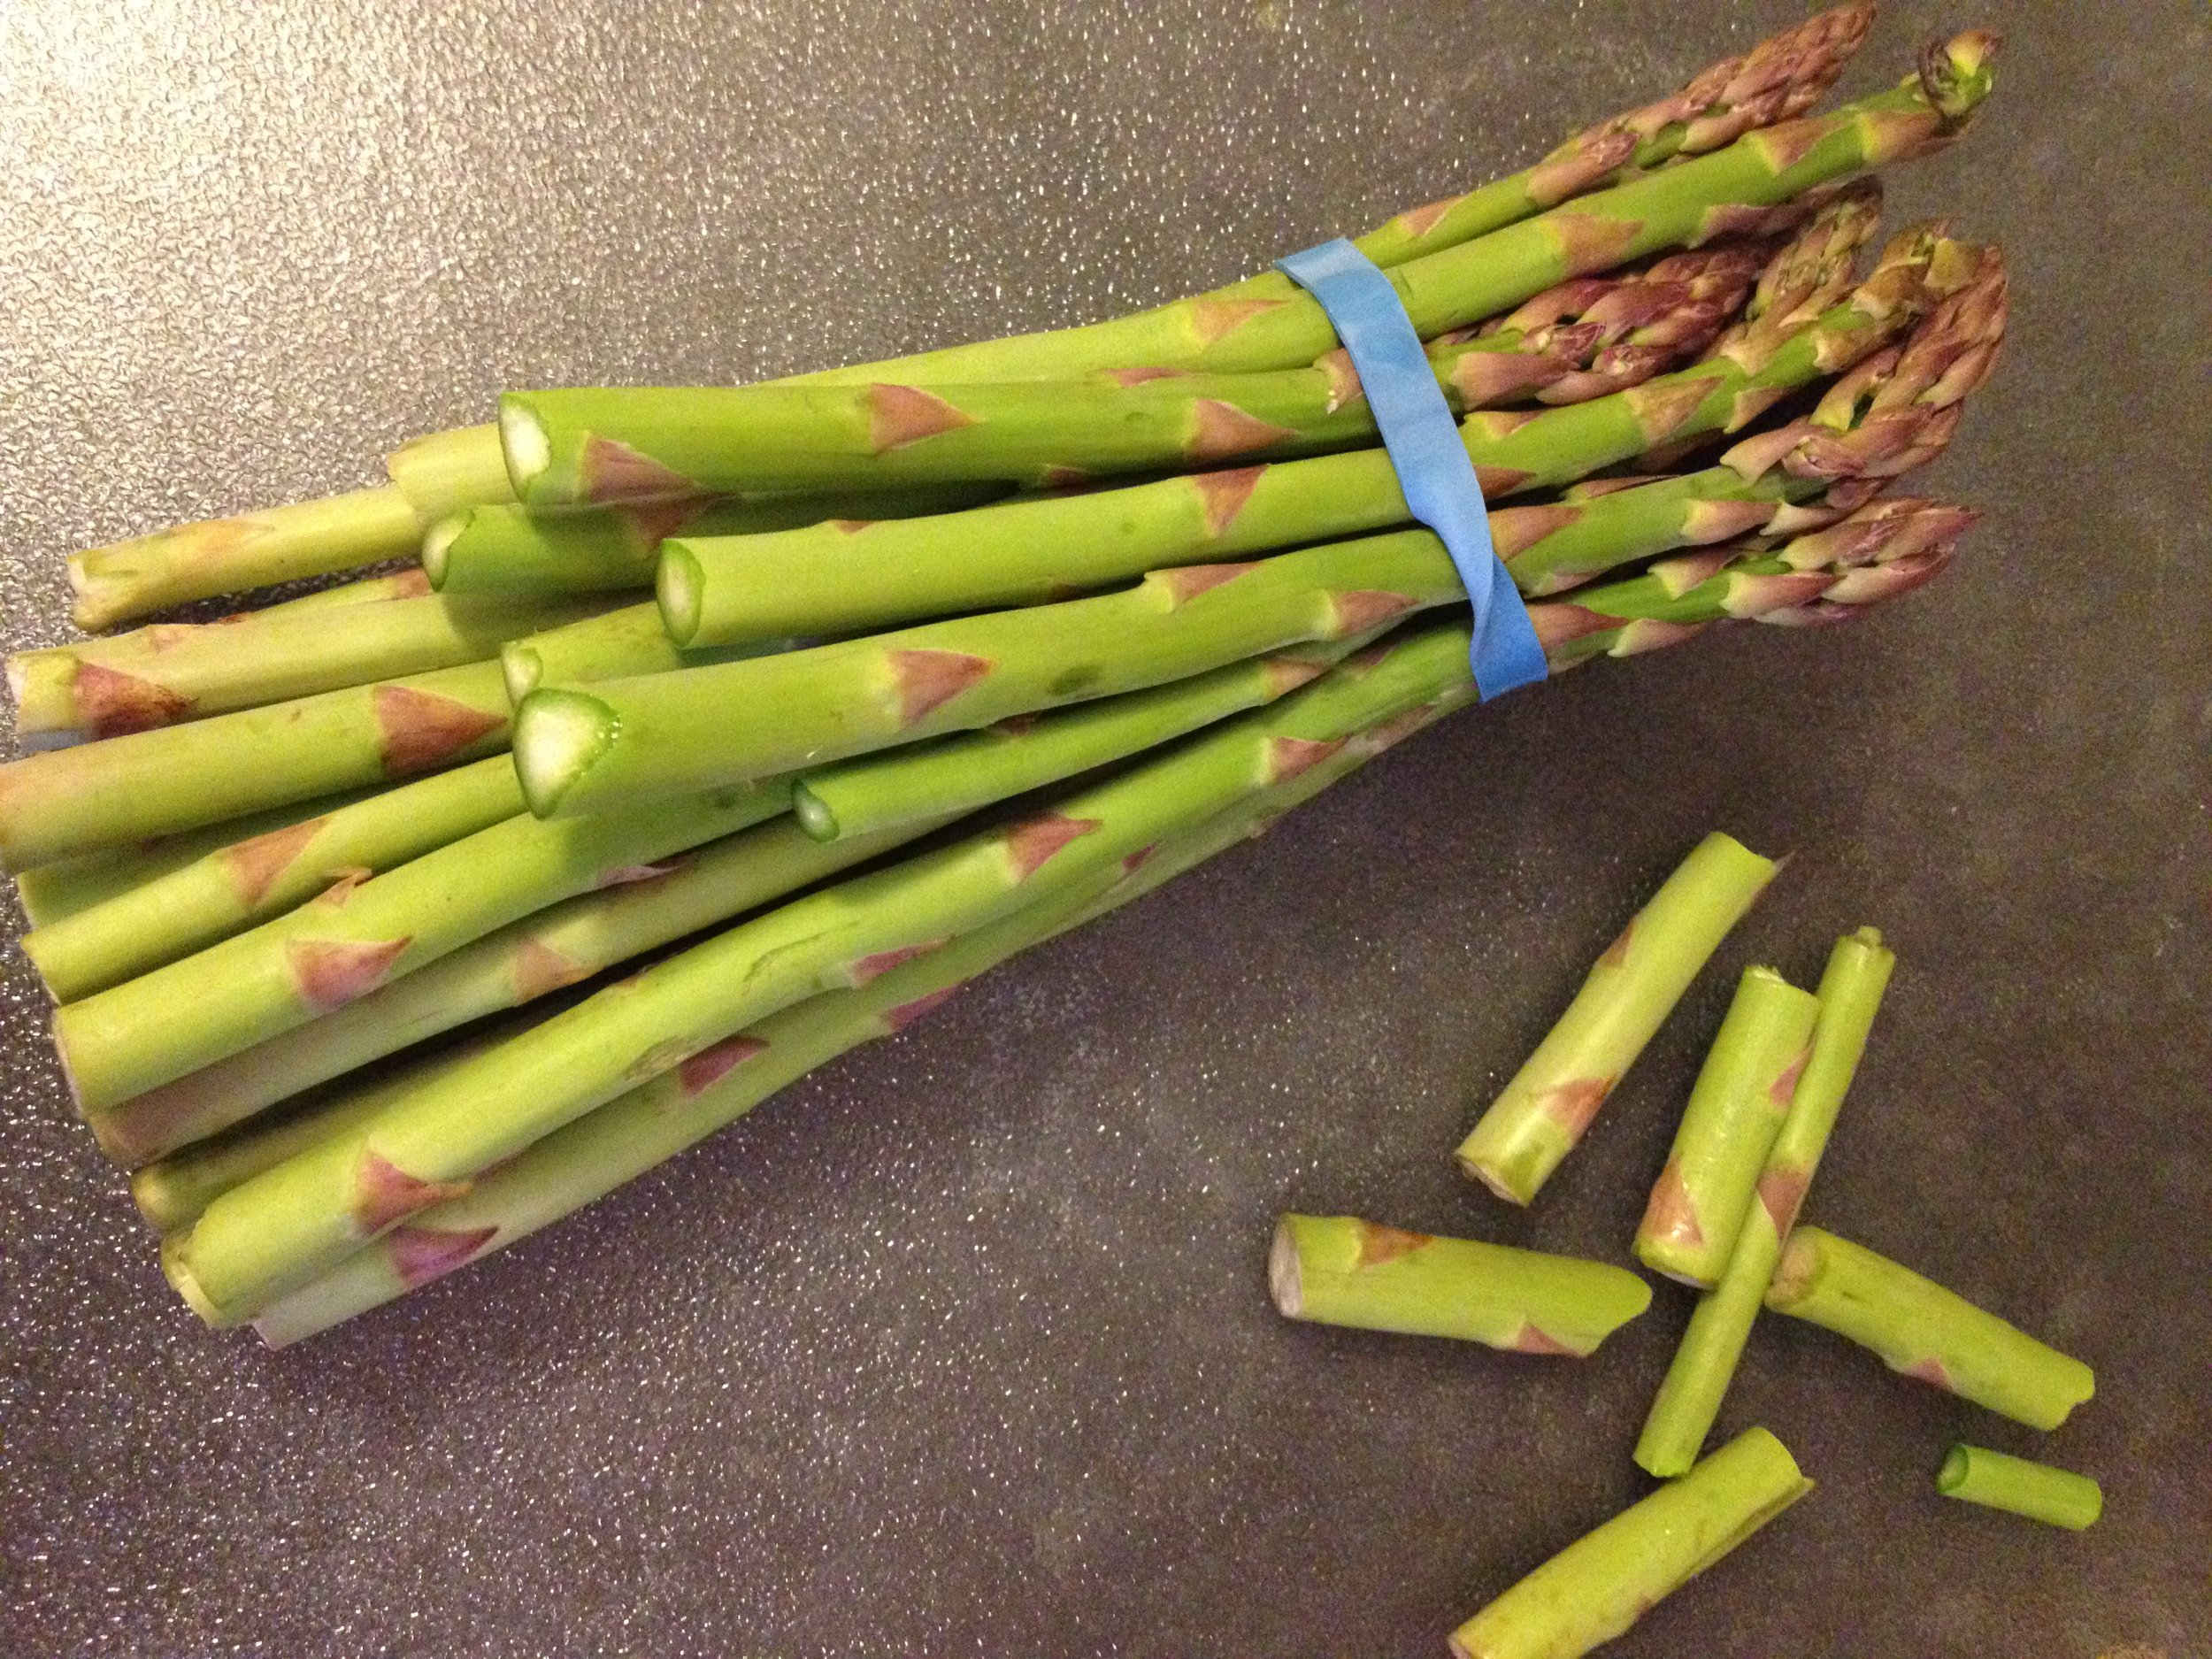 Asparagus with a natural guide line for trimming.